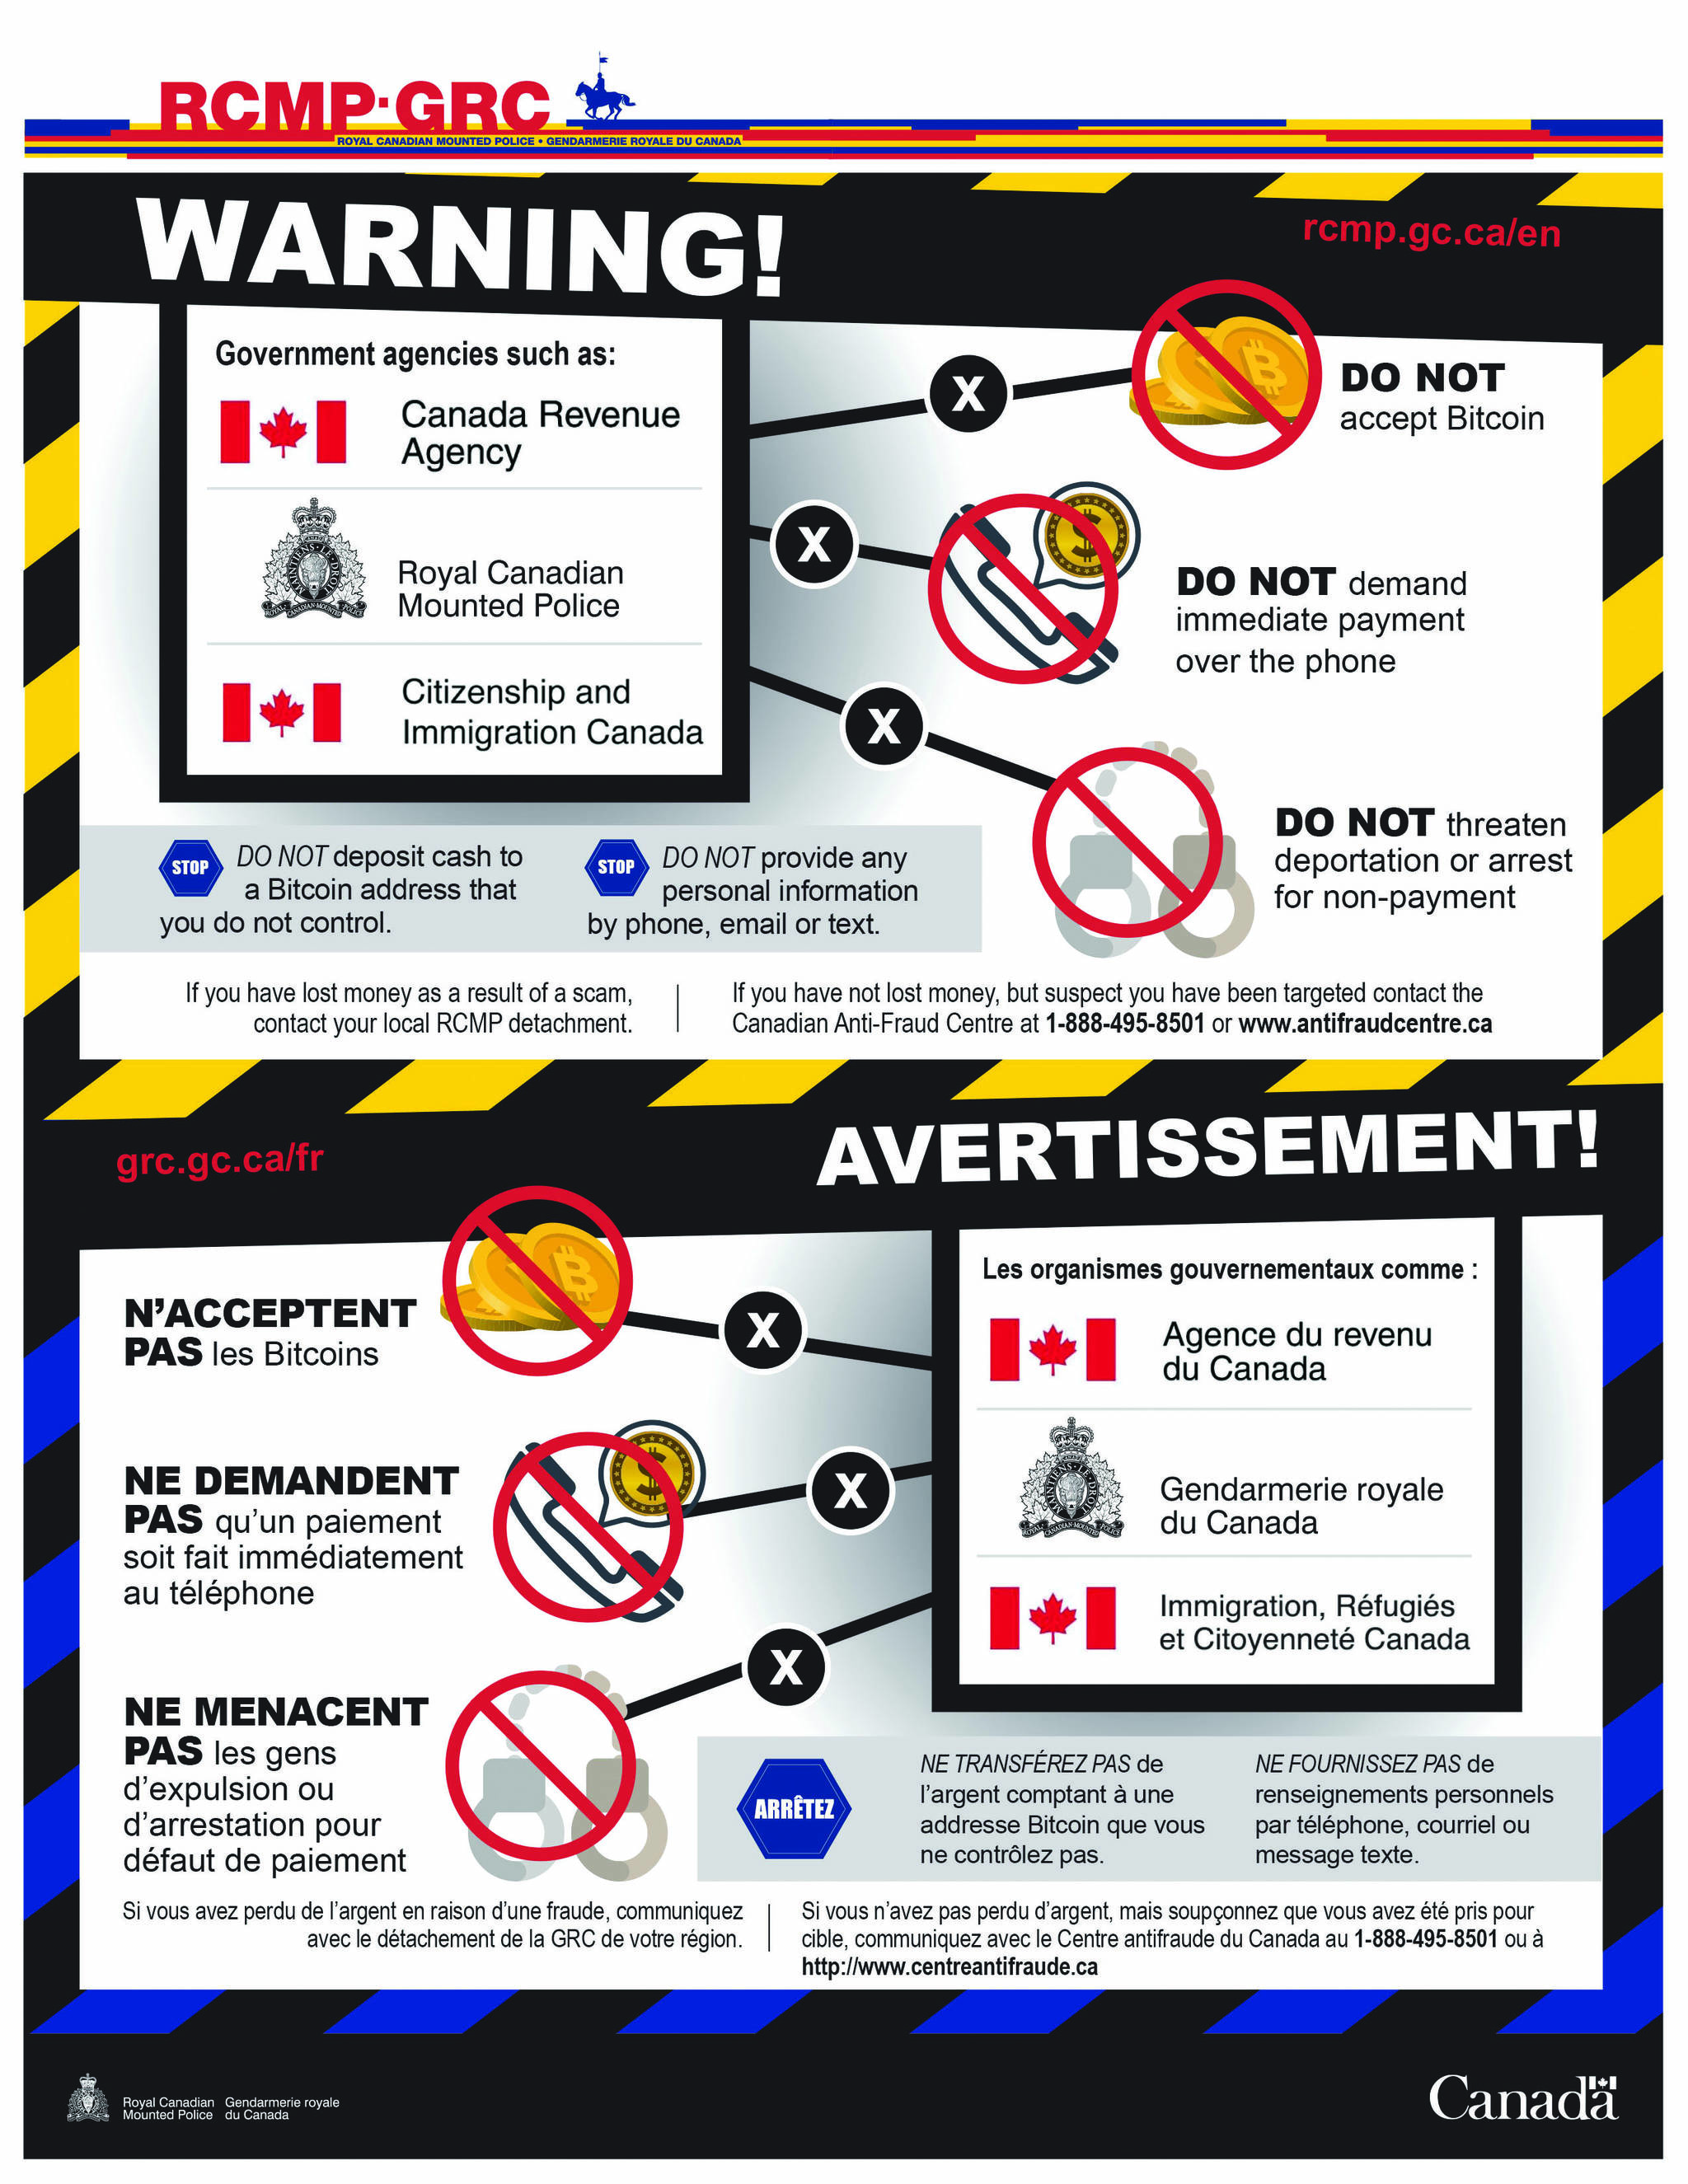 An RCMP/Government of Canada poster reminds that police and government agencies do not demand payment or make threats of arrest for non-payment.